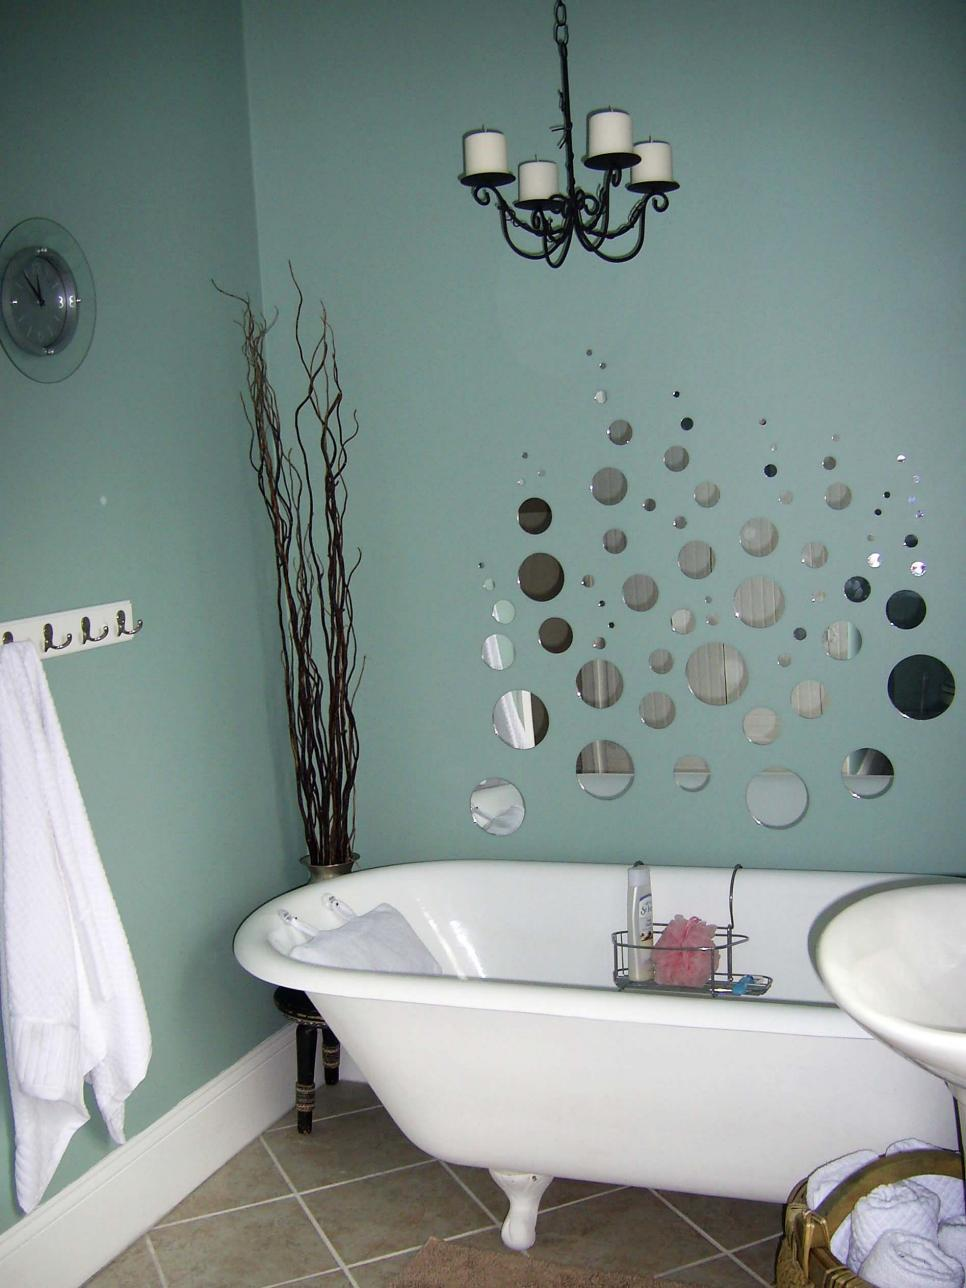 Bathrooms on a budget our 10 favorites from rate my space for Bathroom mural ideas